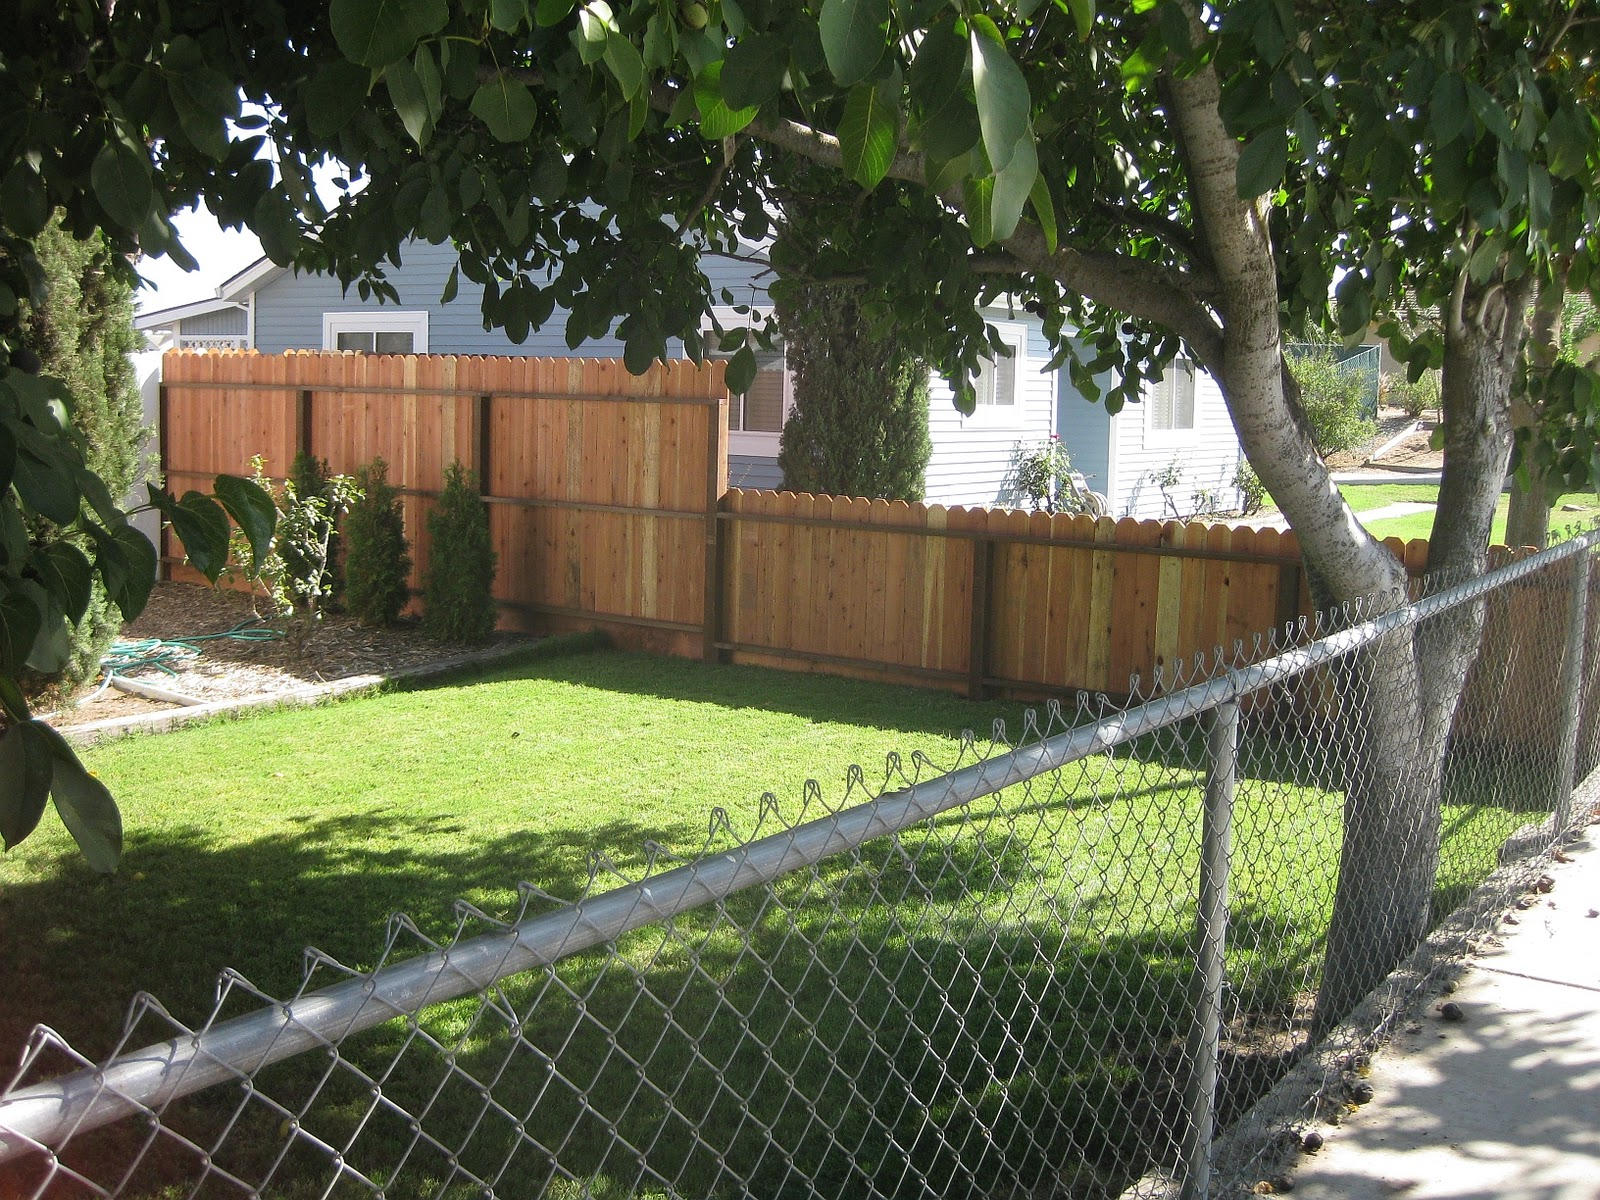 Country Living in the City of Manteca: Picture Perfect Fence